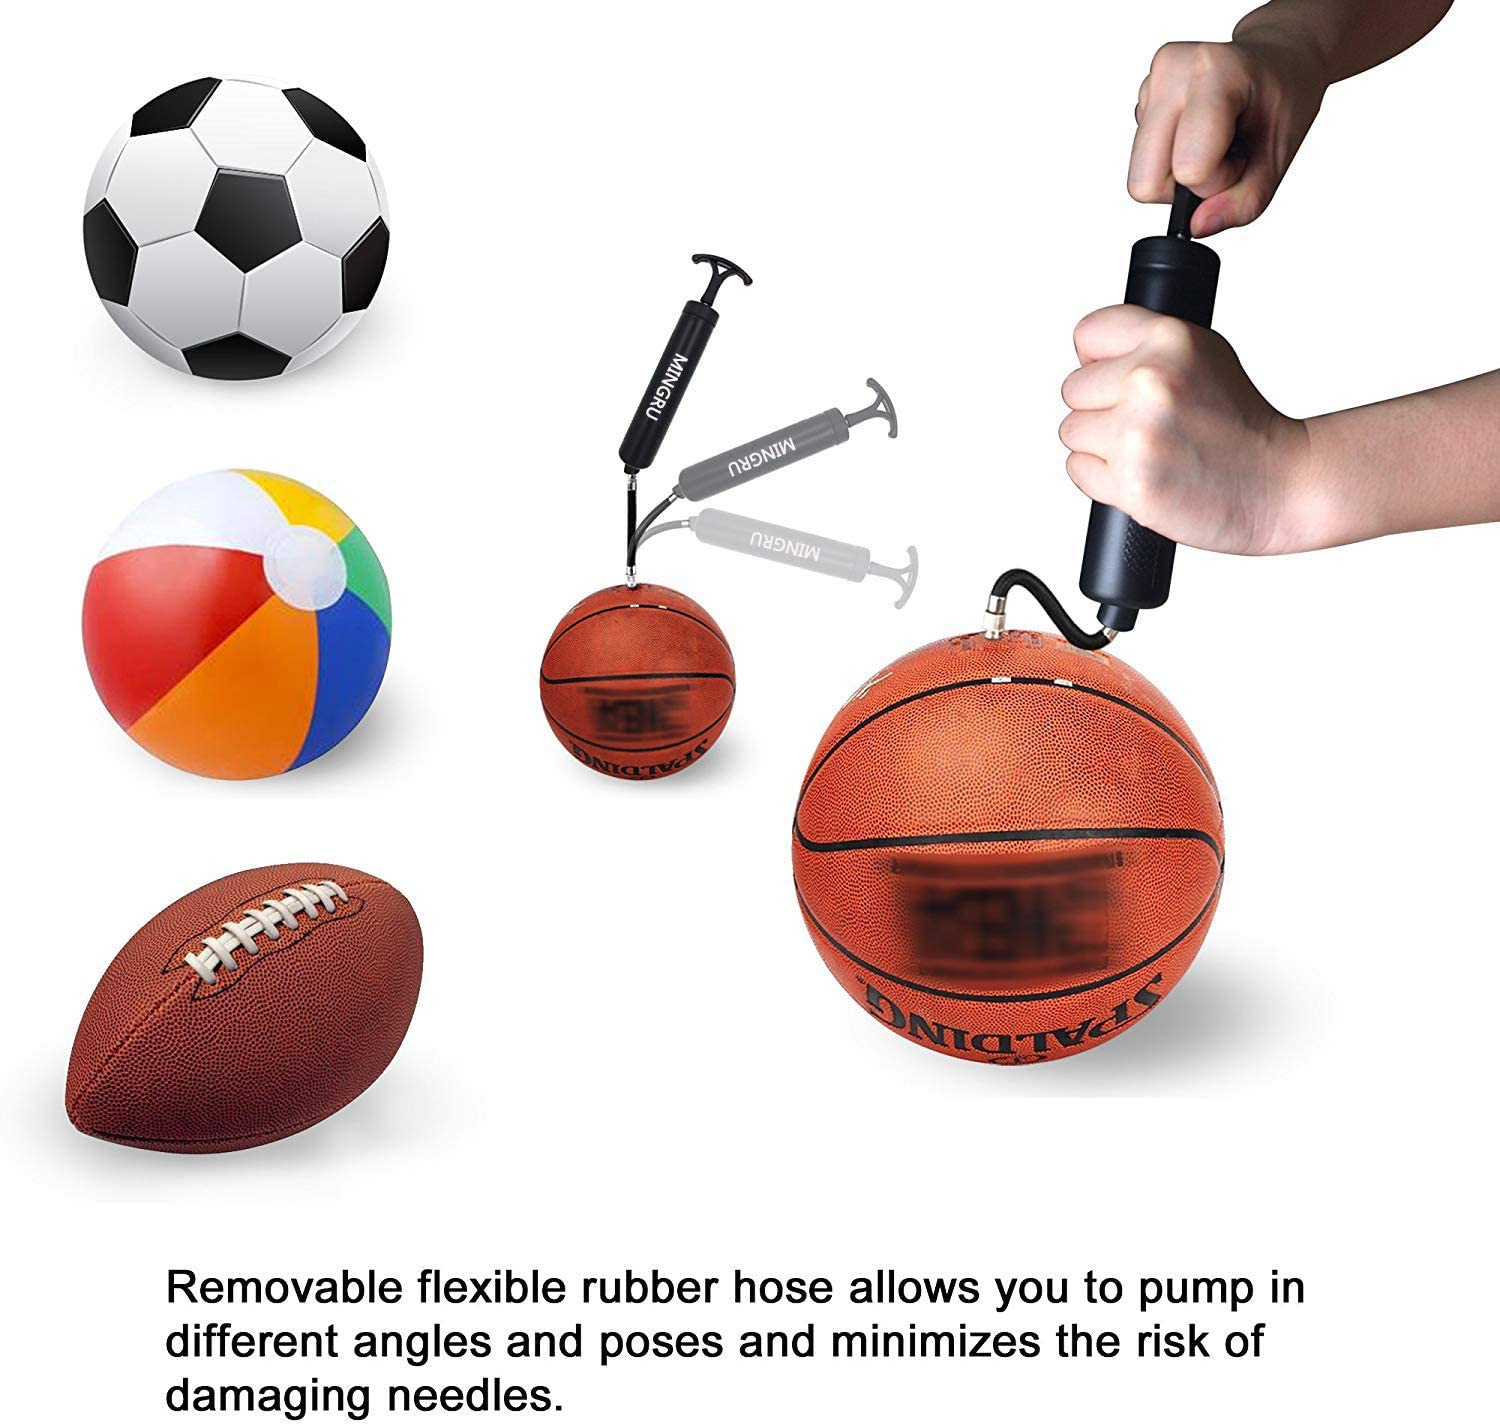 Ball Pump Black - 1 Pack Volleyball Needles and Nozzles Included Soccer Water Polo ball /& Other Inflatables Air Pump Rugby MINGRU Dual Action Ball Pump for Basketball